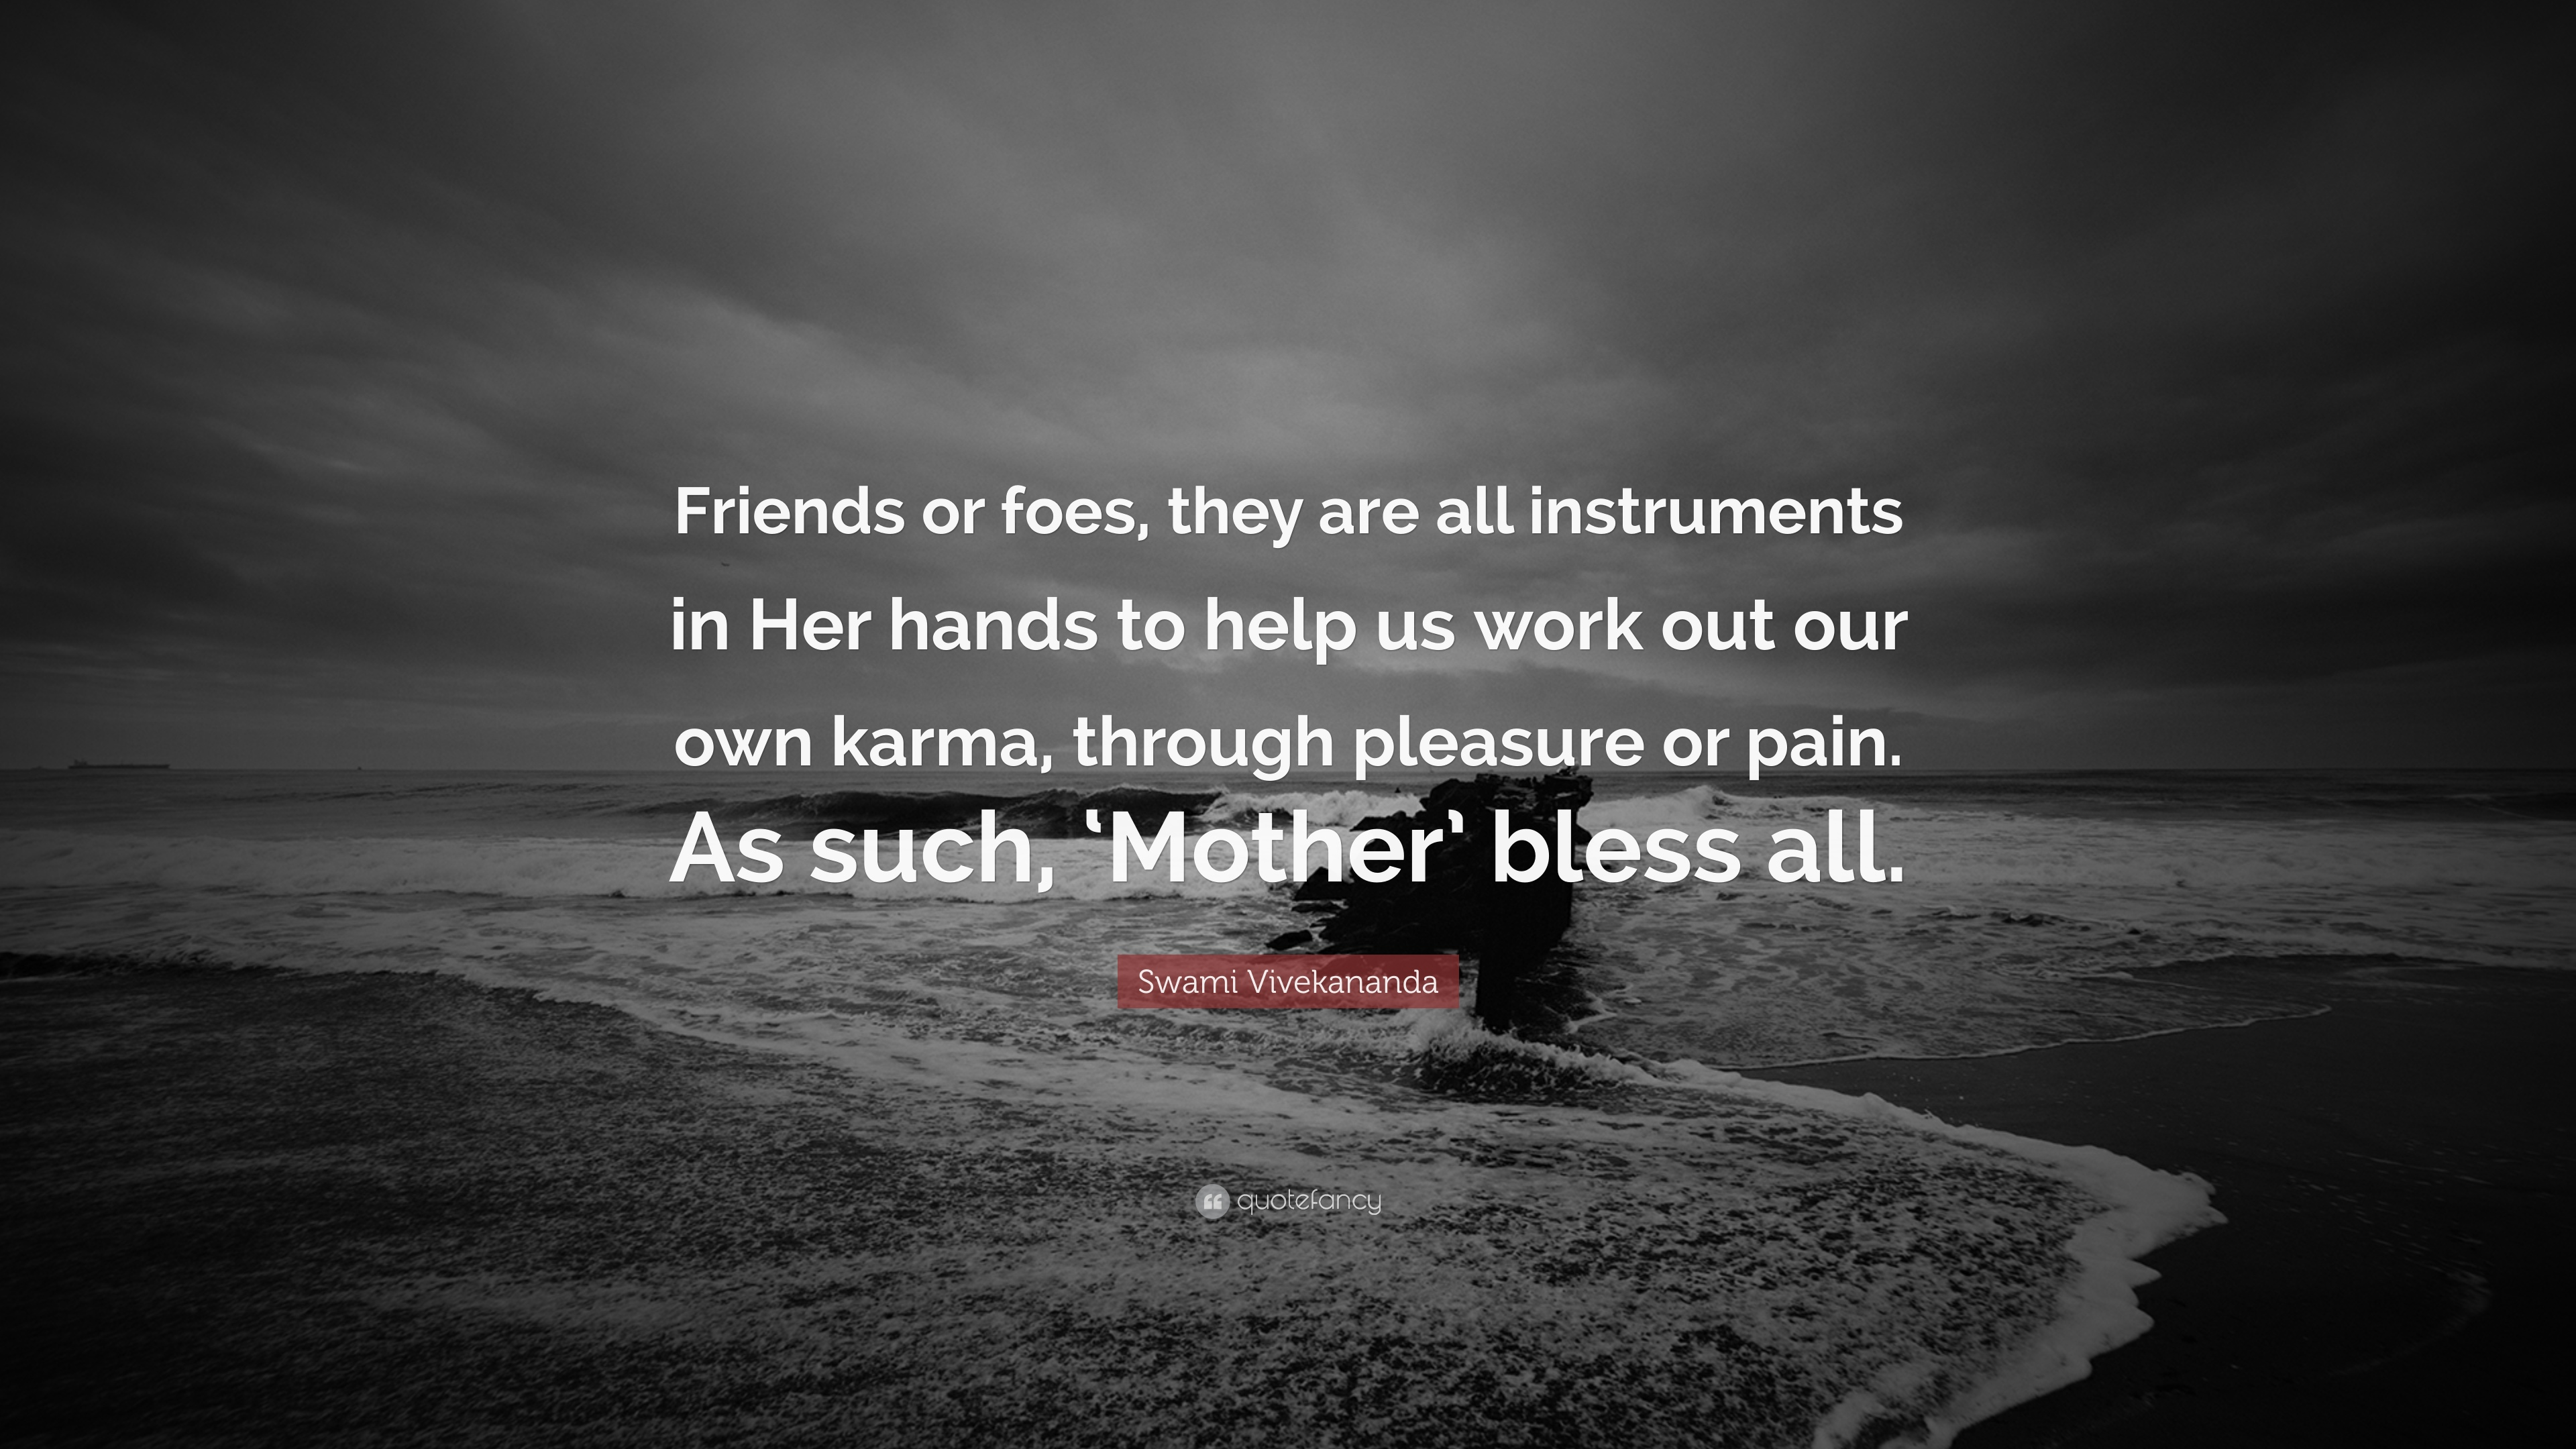 Swami Vivekananda Quote Friends Or Foes They Are All Instruments